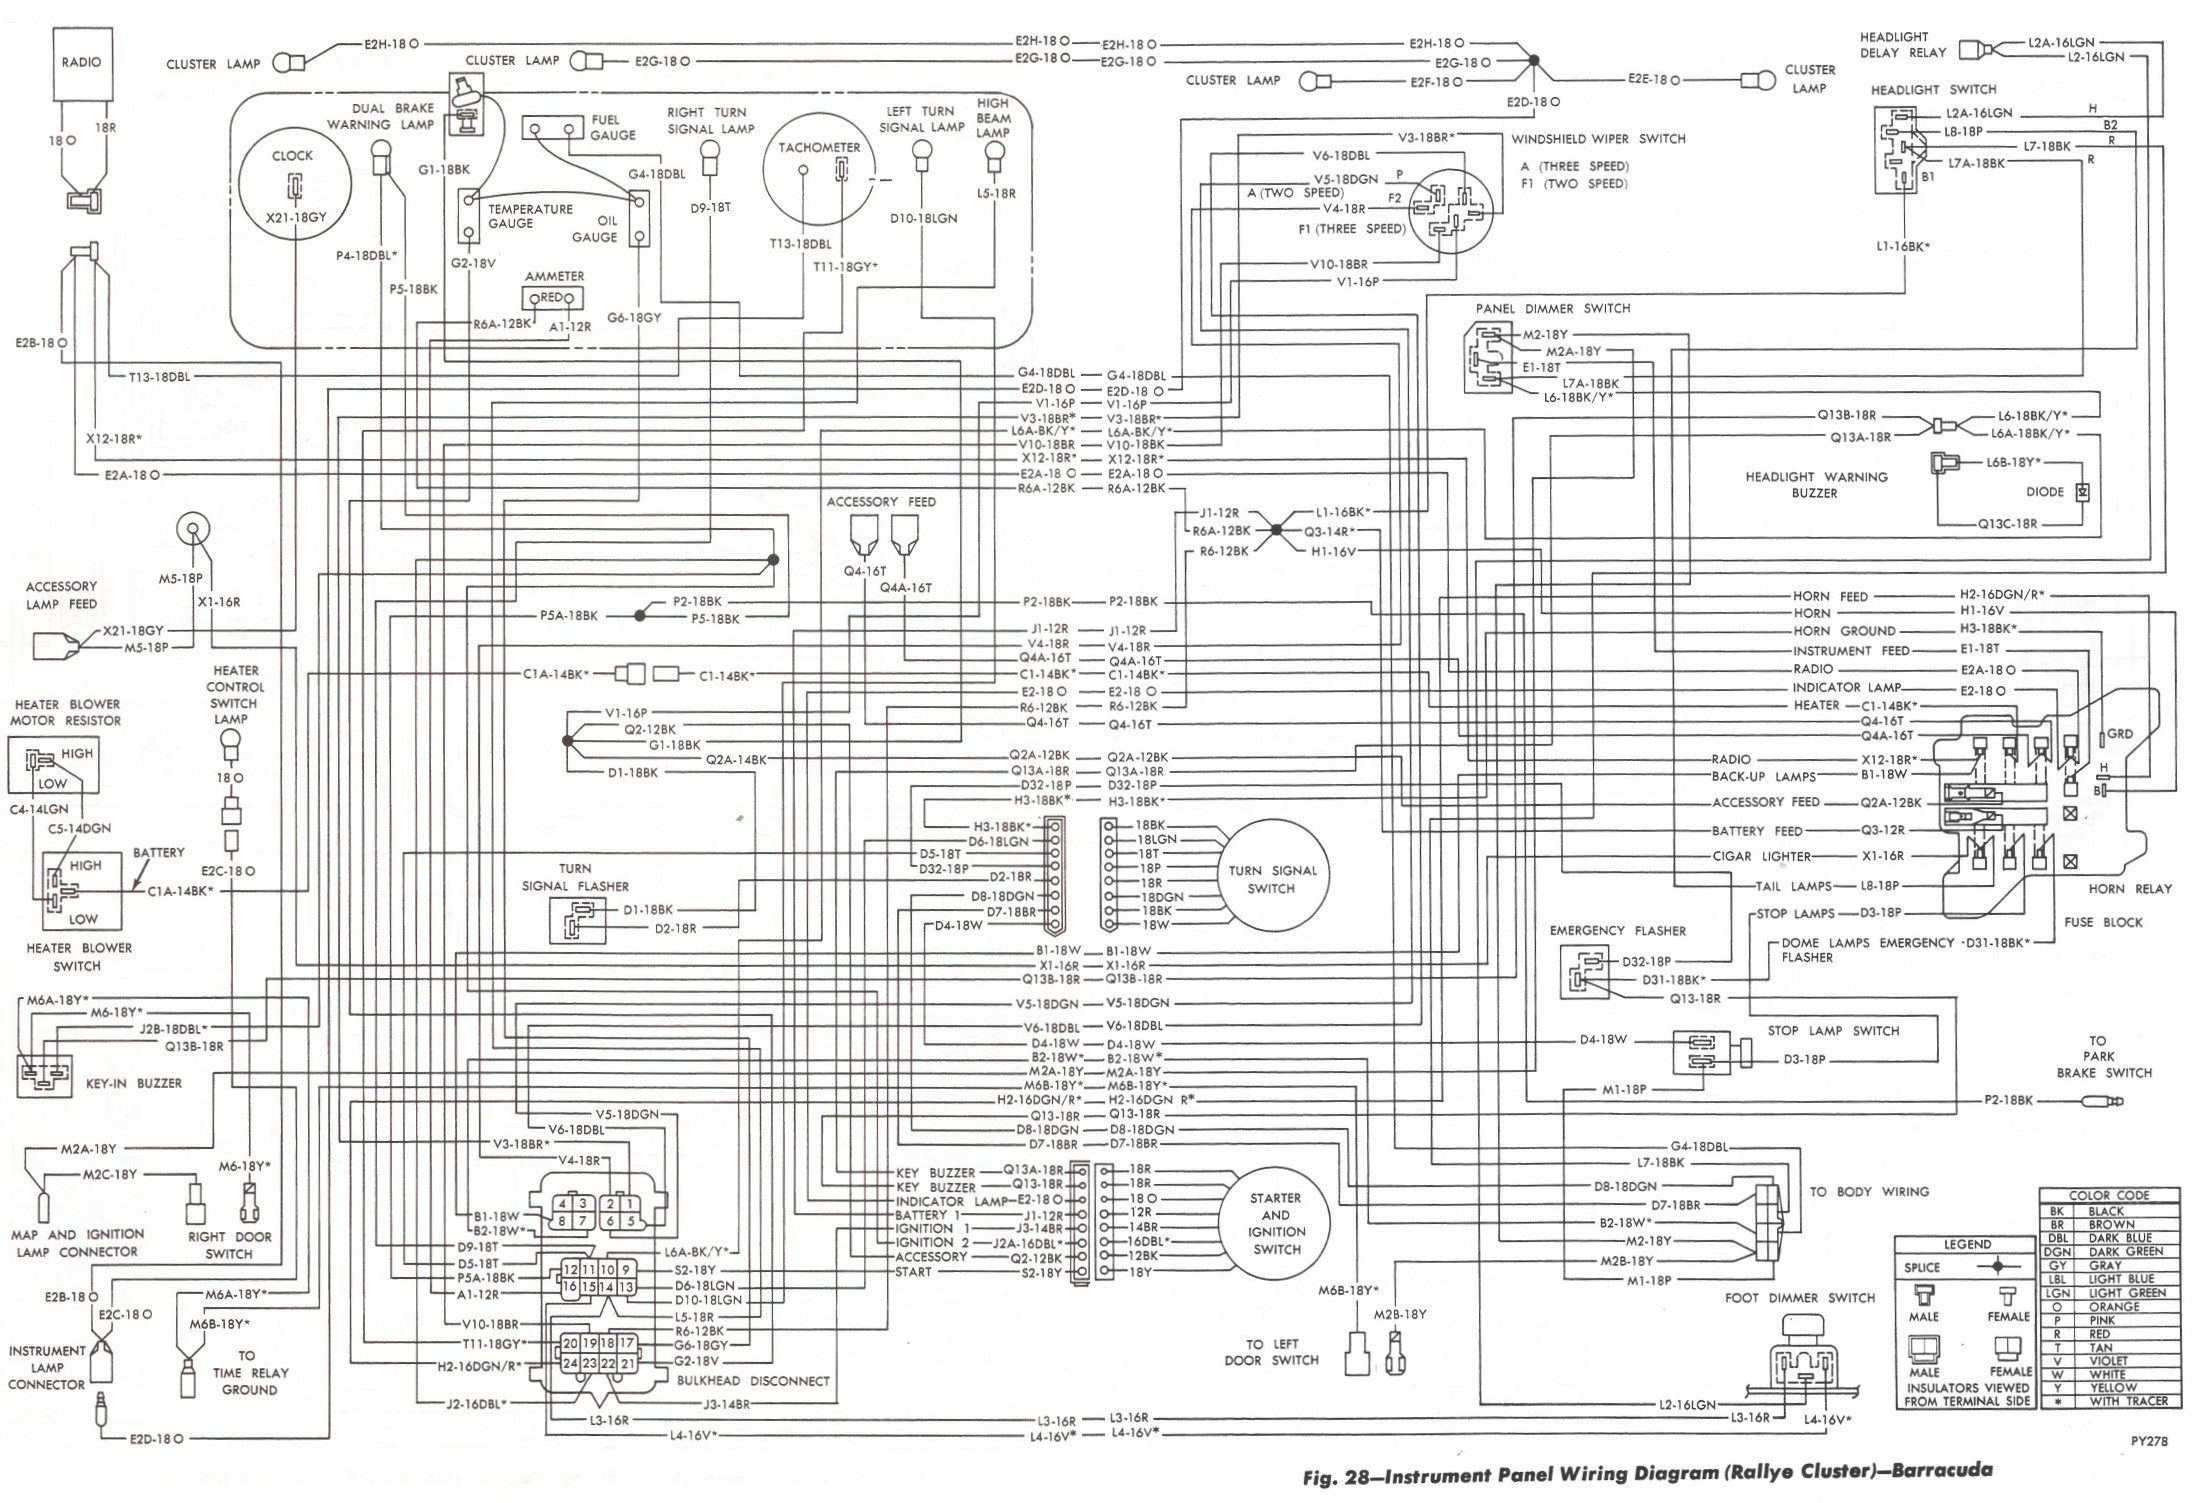 6709072 InstrumentPanelAccessoryWiringDiagram Barracuda2 70 cuda wiring diagram 70 charger wiring diagram \u2022 wiring diagrams wiring diagram for 1968 plymouth roadrunner at aneh.co